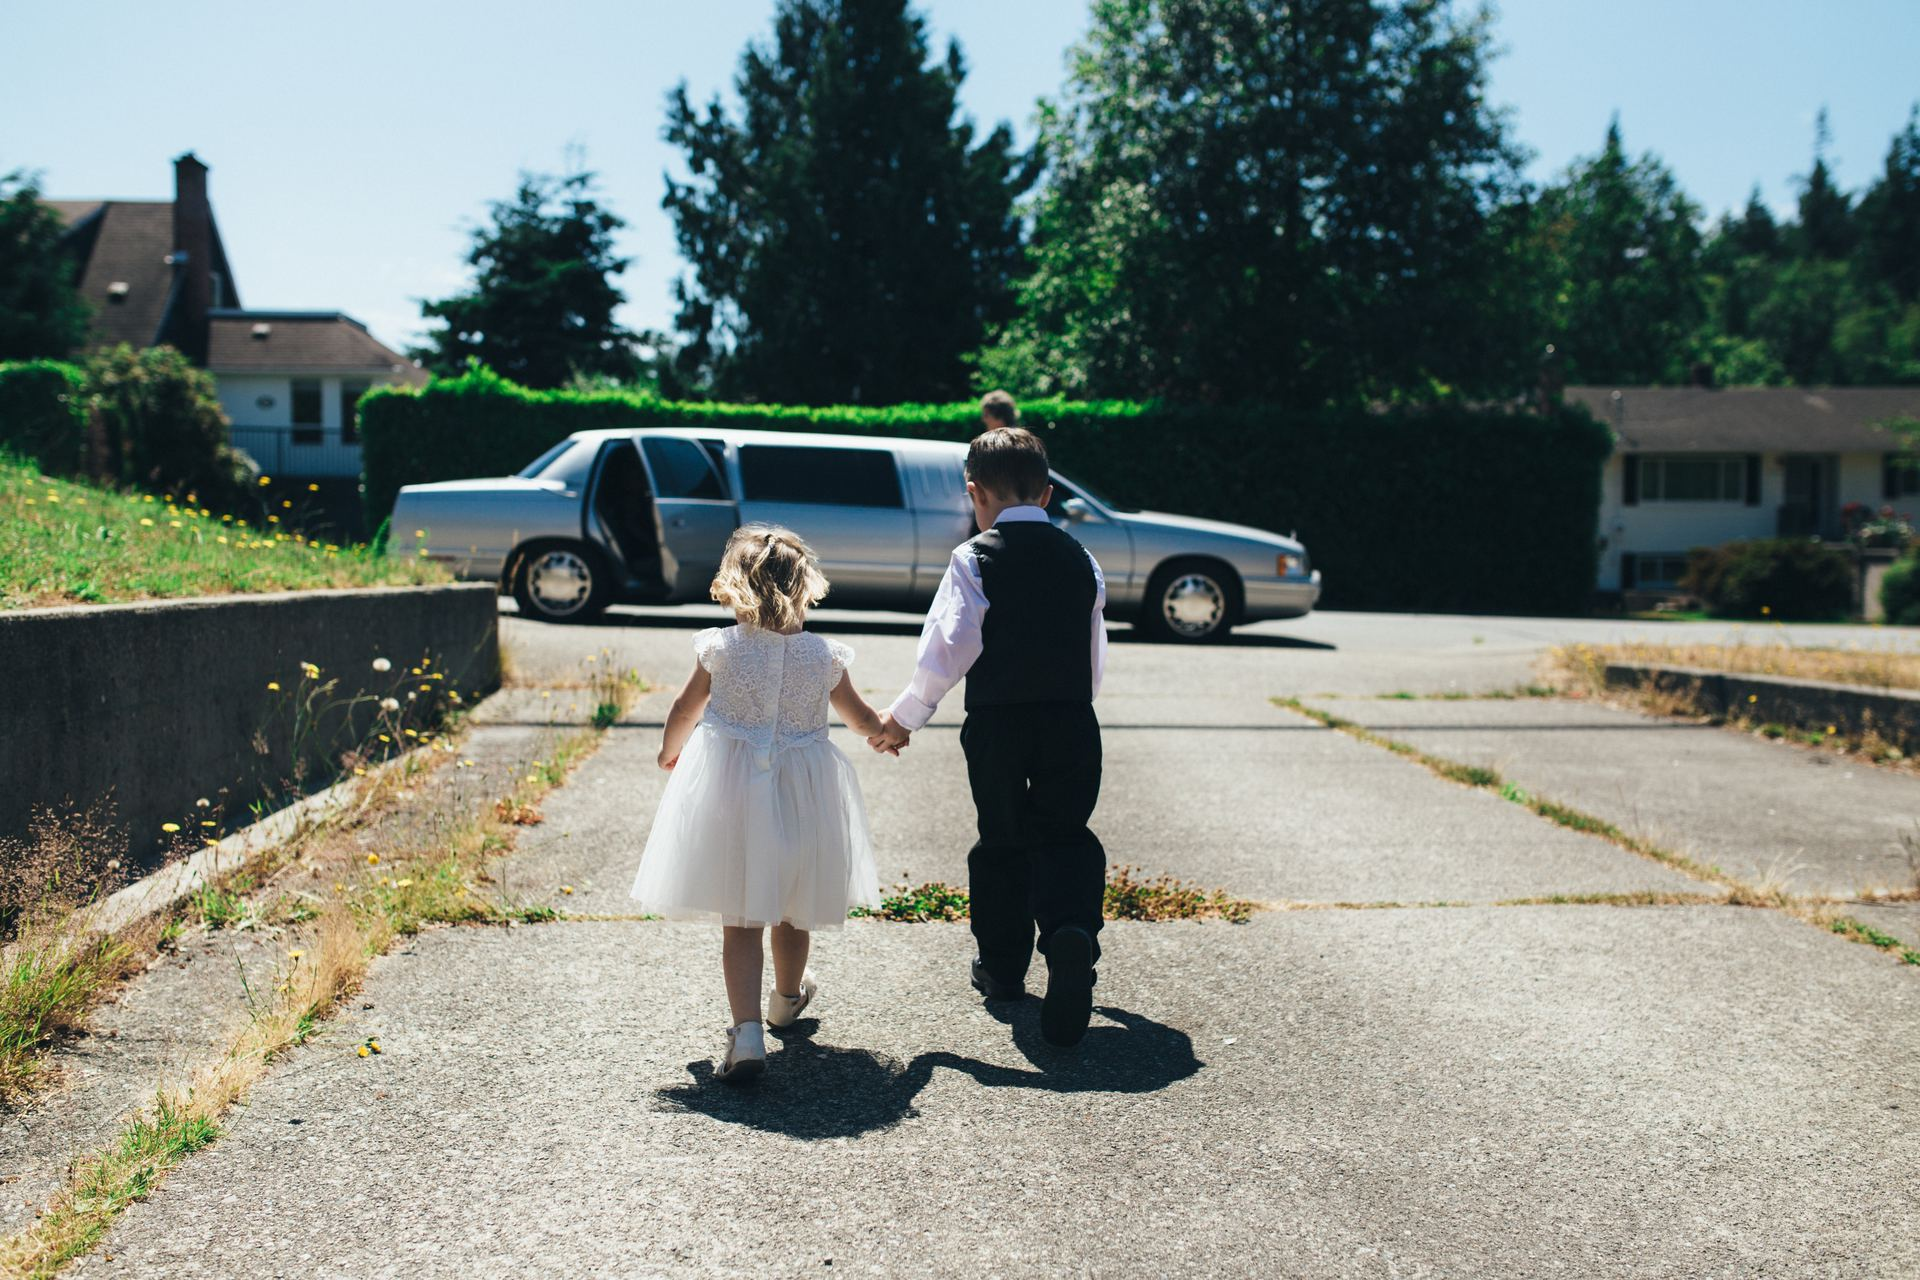 Wedding Traditions: The low down on Ring Bearers